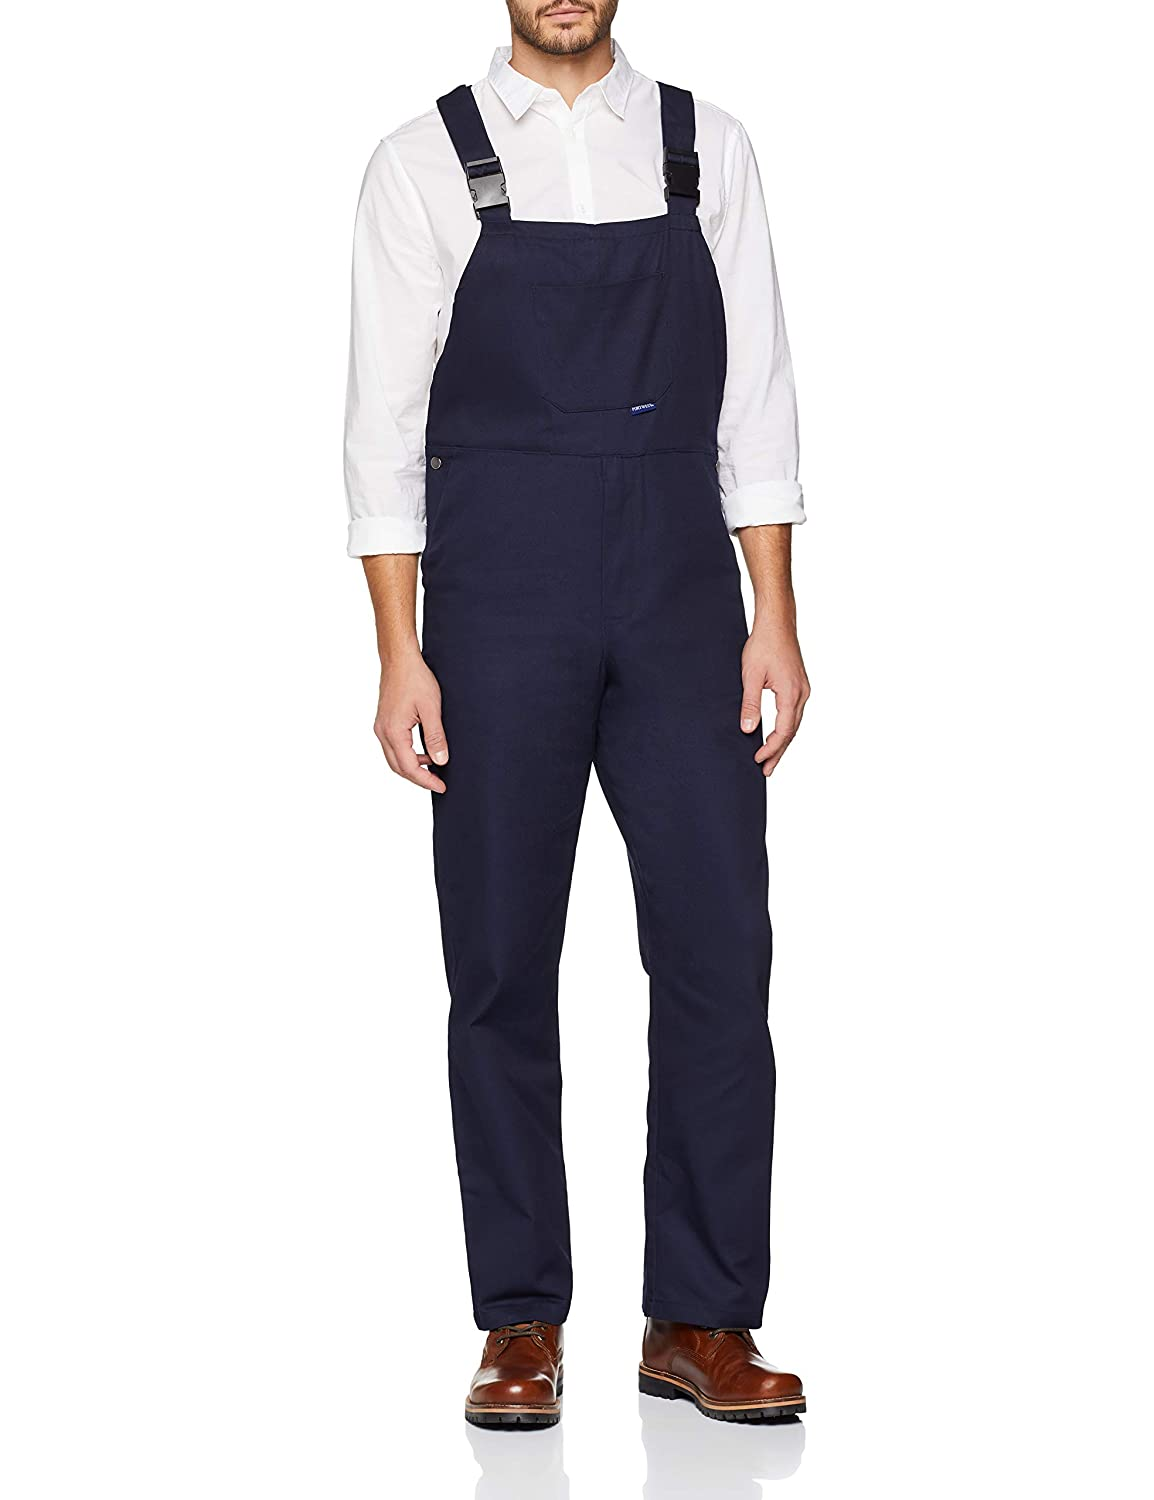 Engineers Bib & Brace Trousers Dungarees Work Workwear Student S - 4XL C881 oxC881